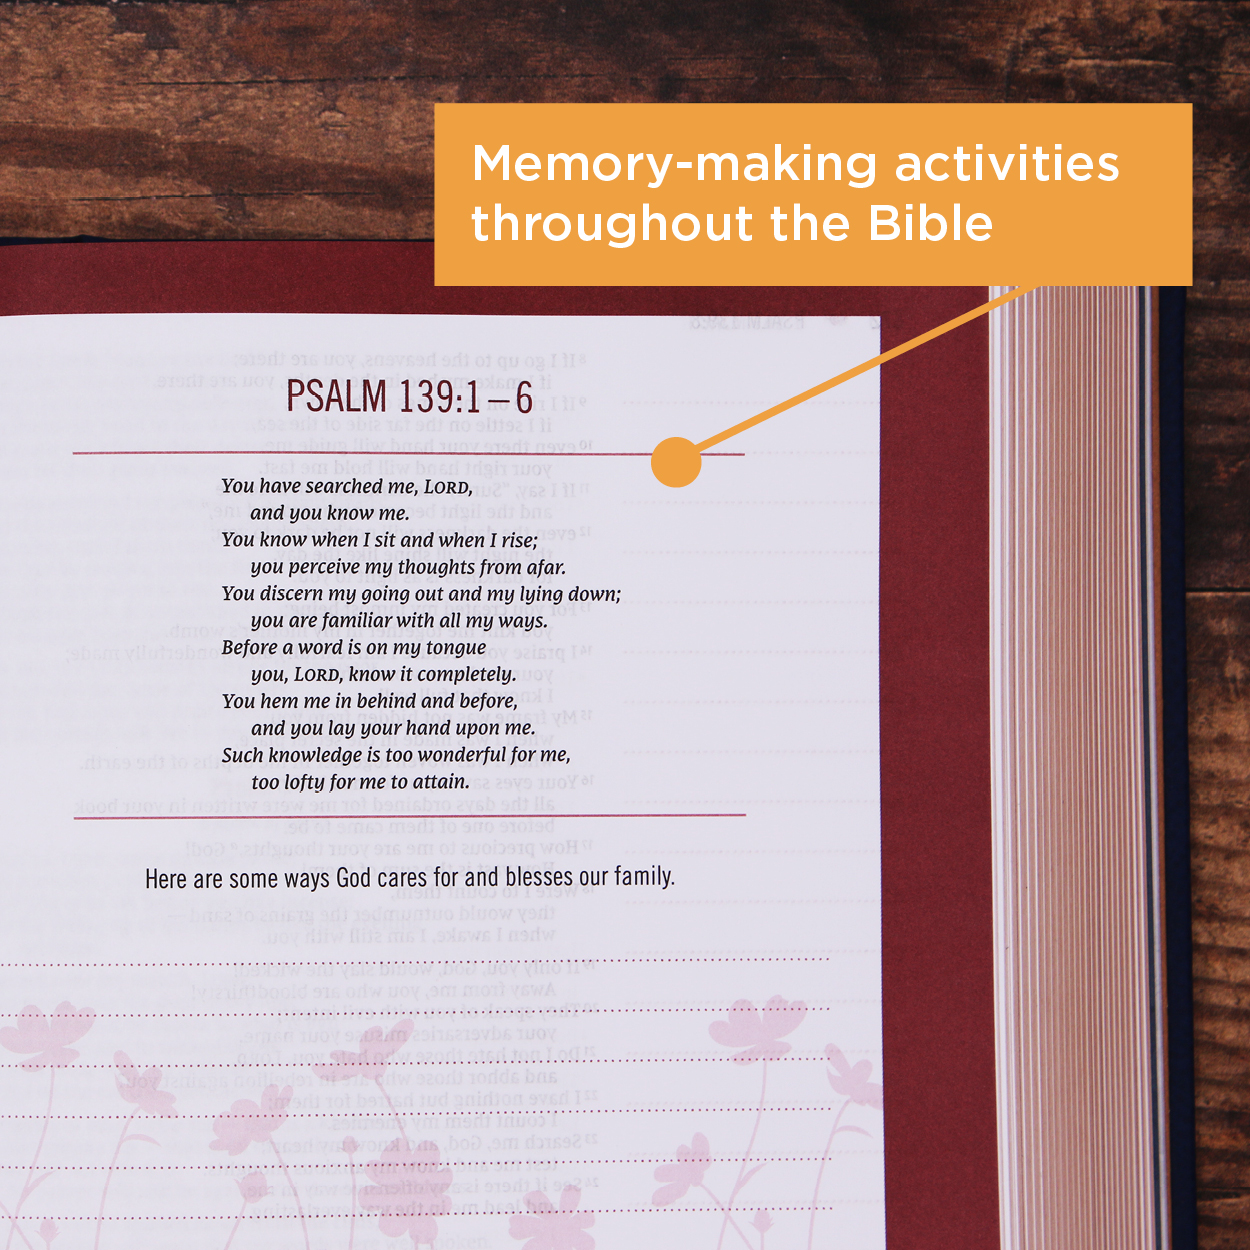 OFS_Features_MemoryMaking